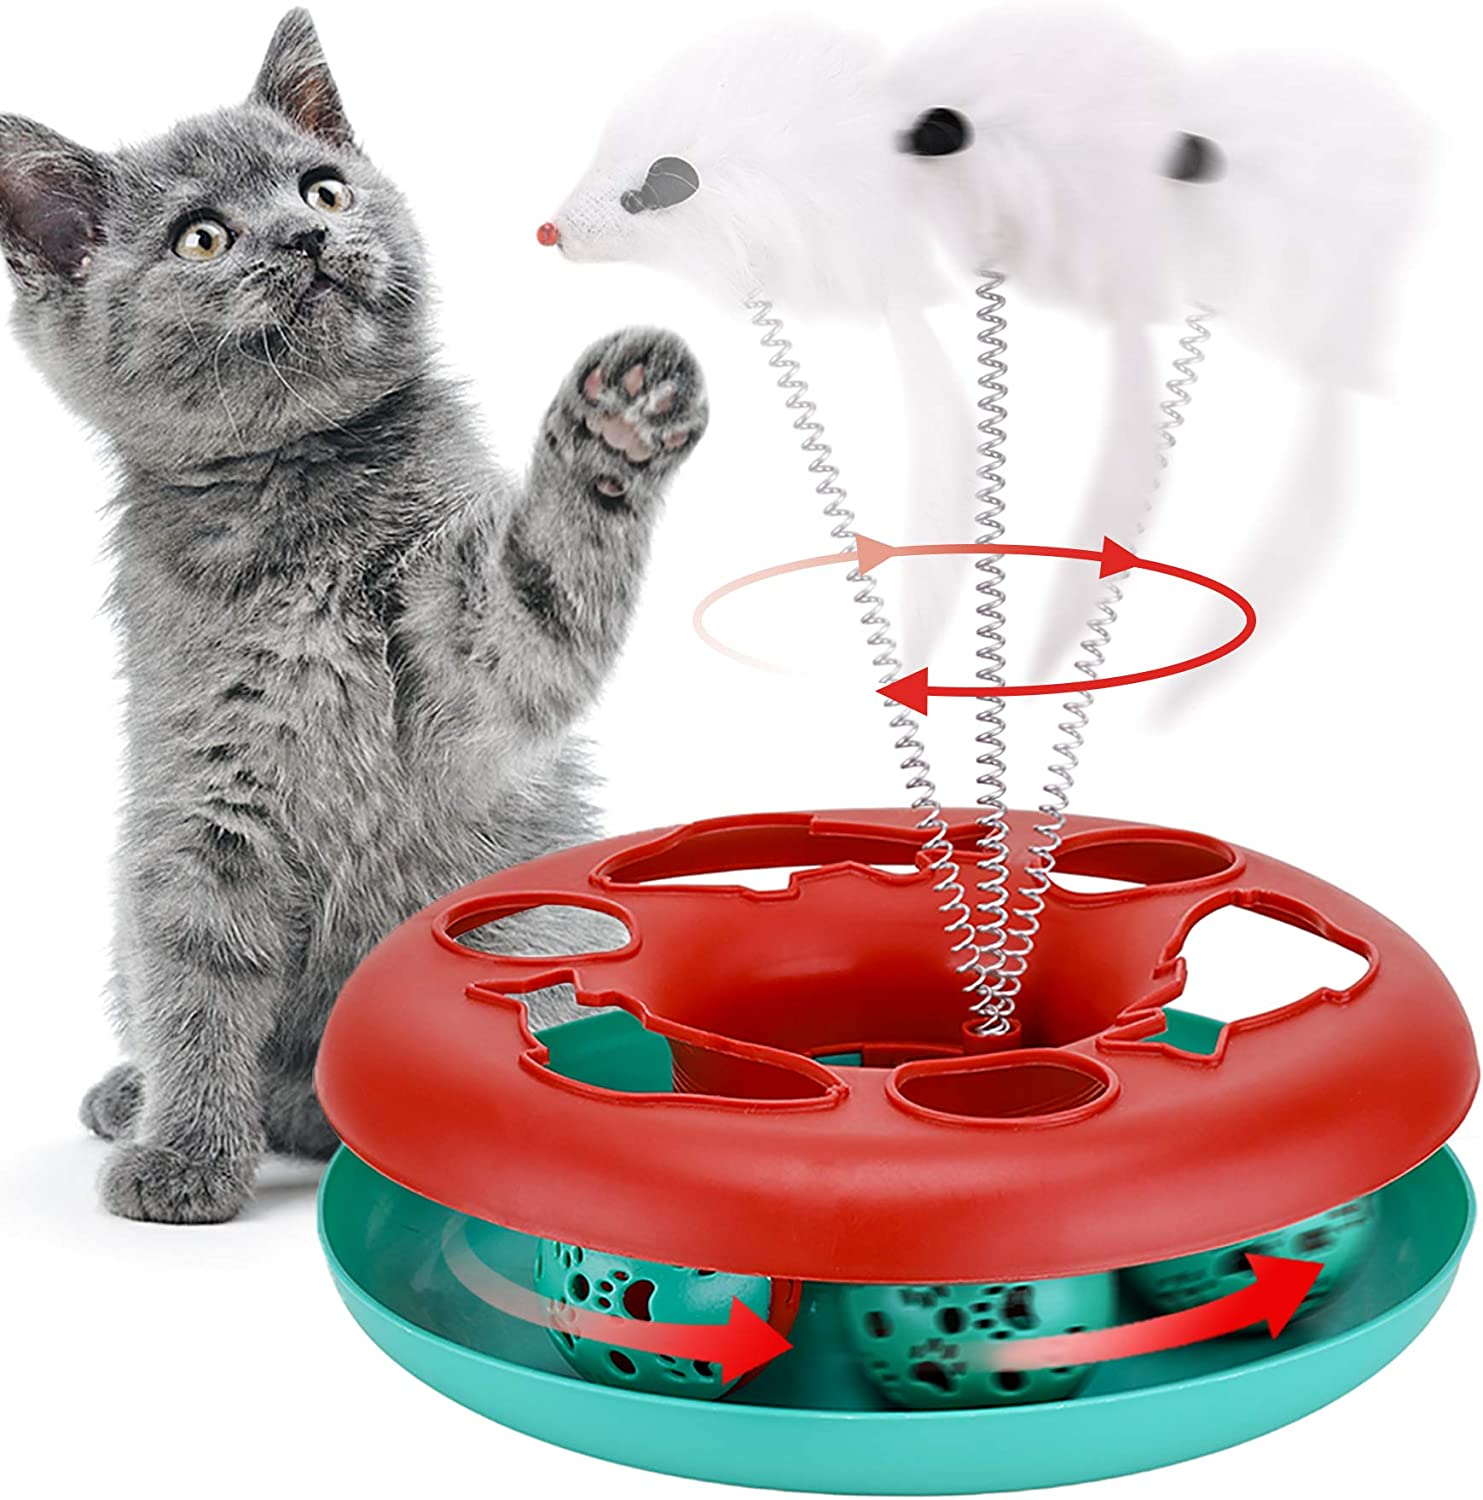 Cat Toys,Interactive cat Toy cat Toys for Indoor Cats,Dog Funny Toys,Kitten Toys for Exercising and Playing